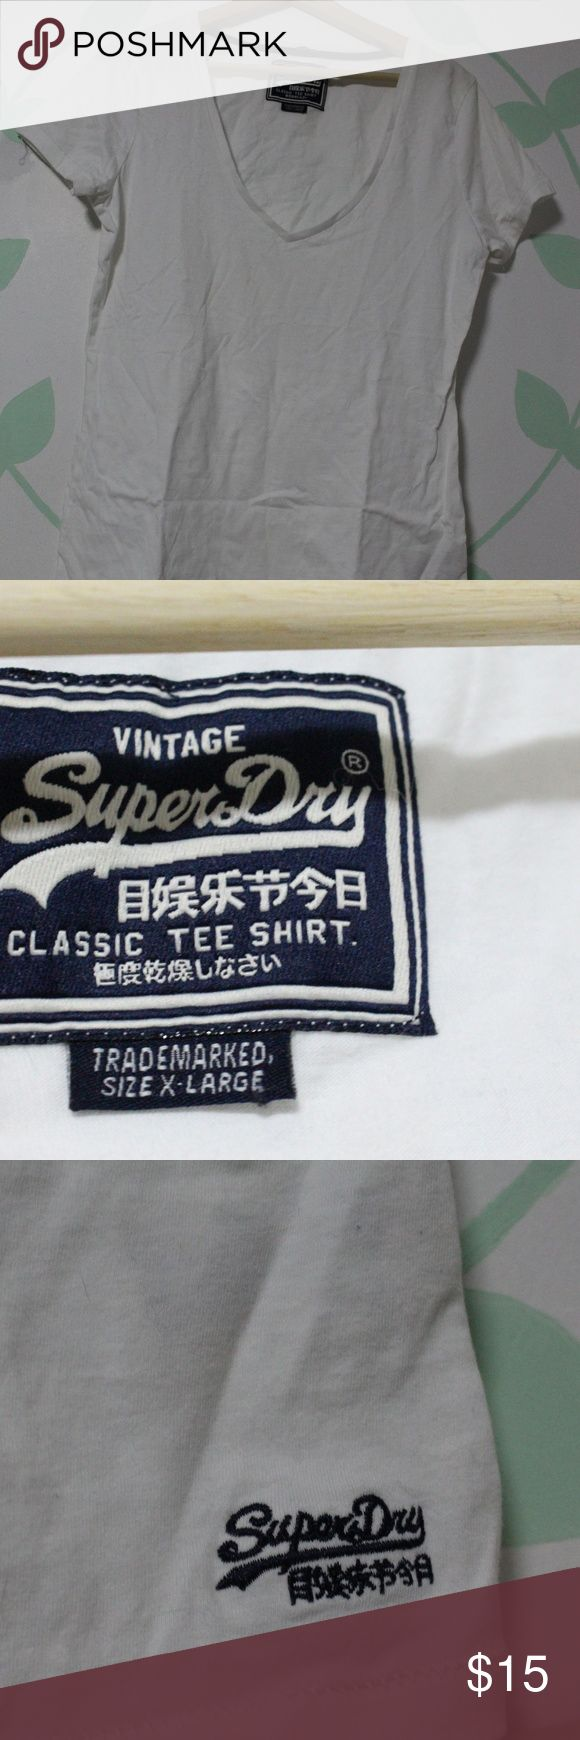 Never Worn SuperDry White V-Neck T Shirt XL Does not have tag on it but its never worn! Superdry Tops Tees - Short Sleeve